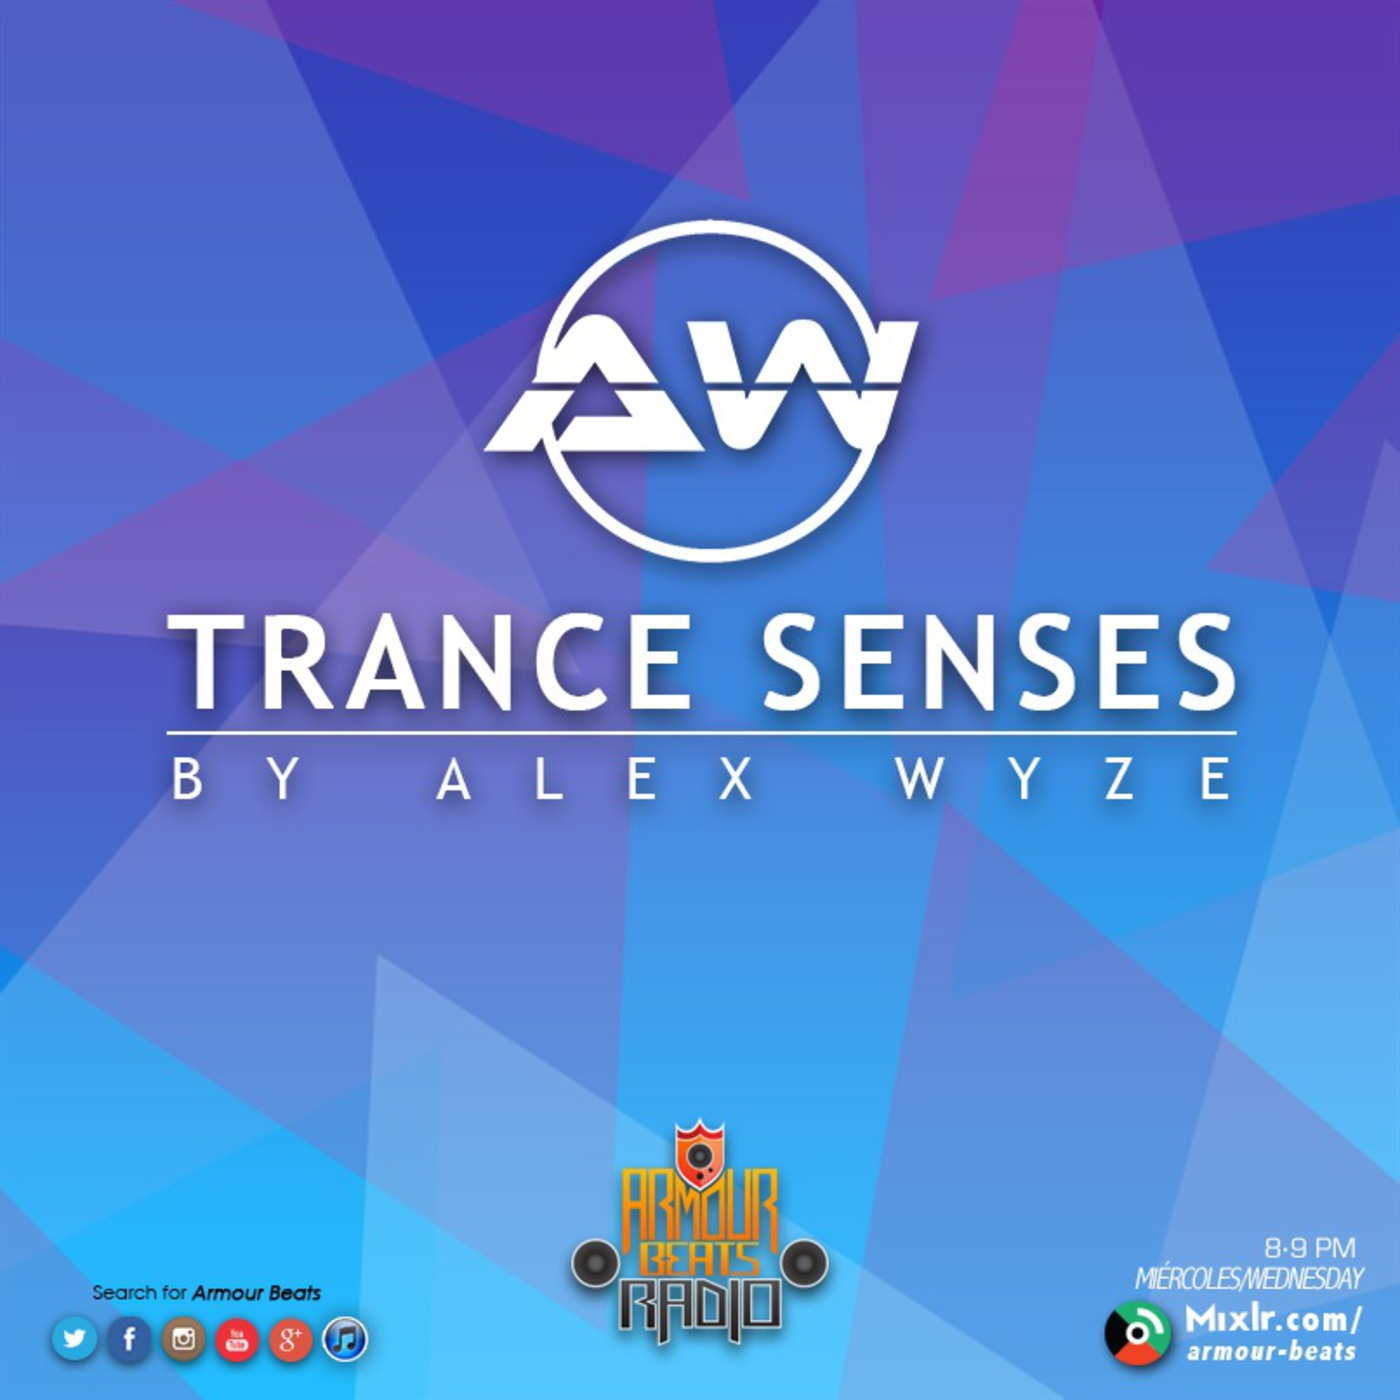 Trance Senses by Alex Wyze